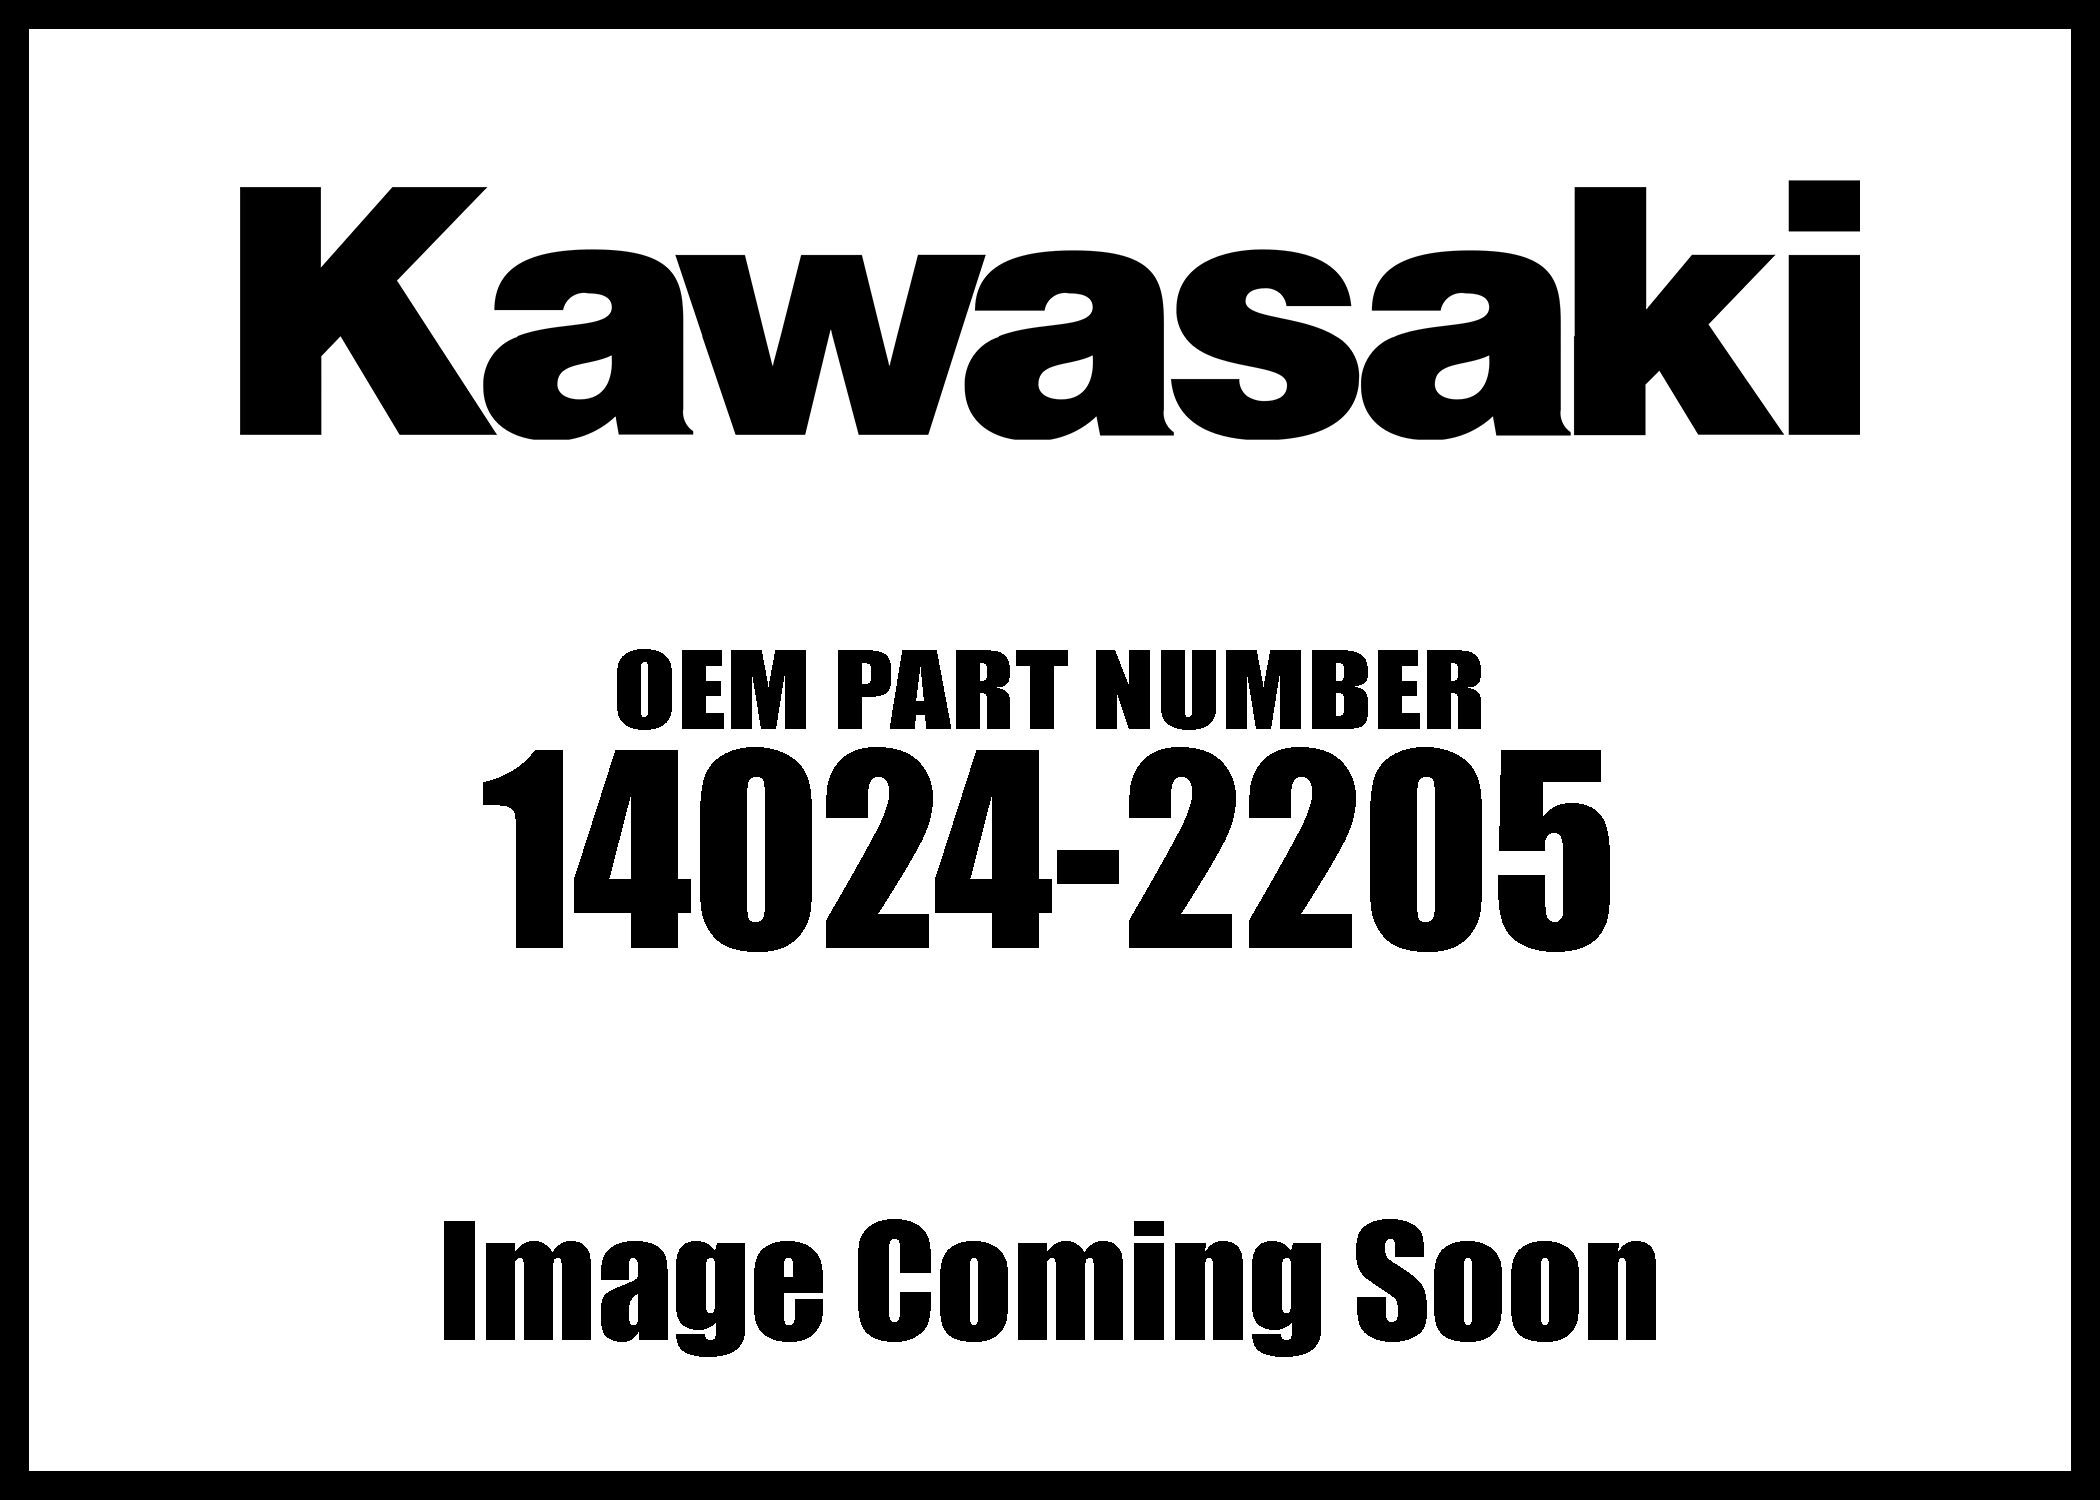 Kawasaki 14024-2205 Cover Genuine Original Equipment Manufacturer (OEM) Part